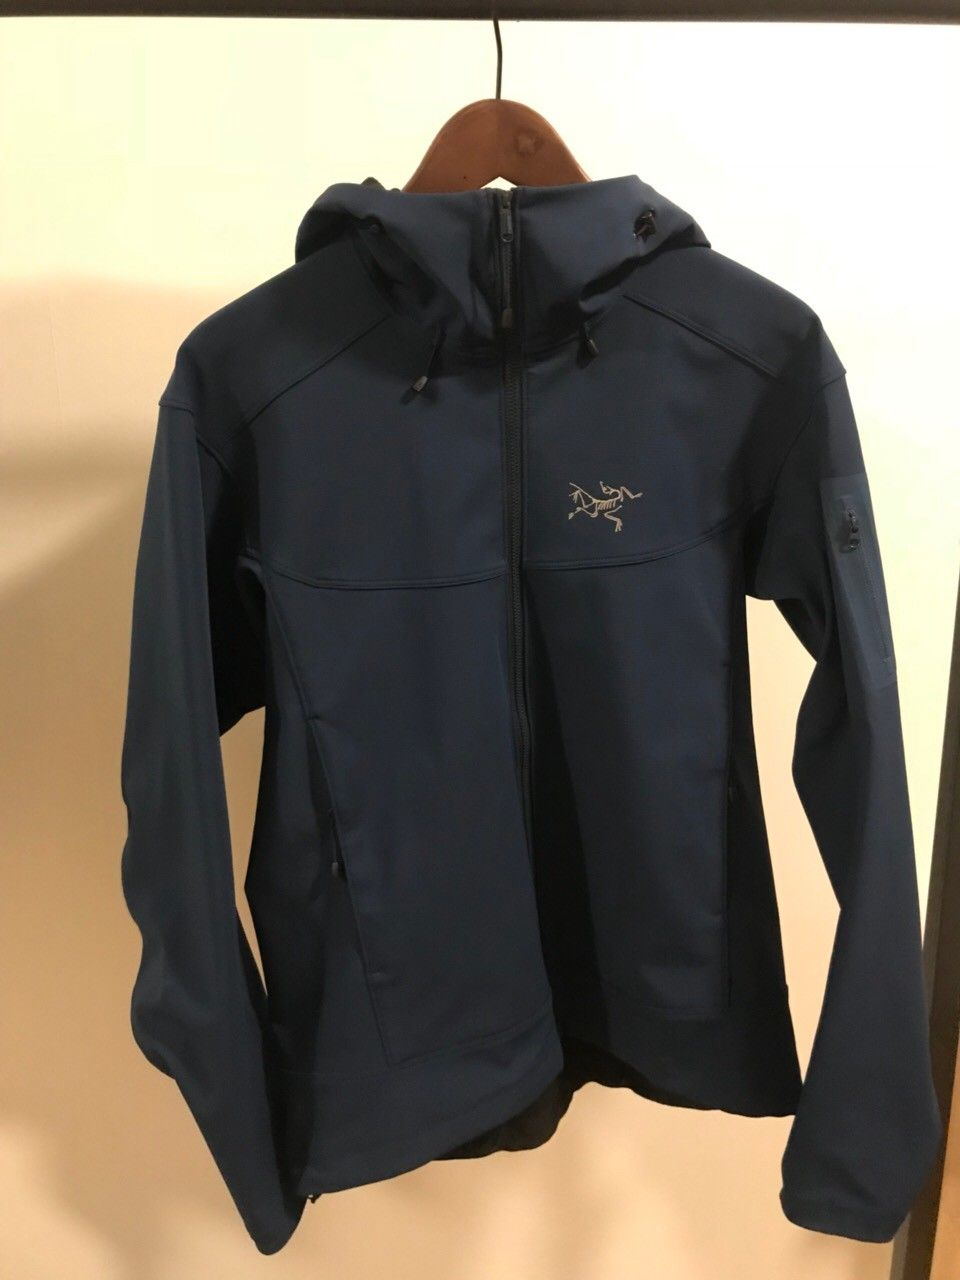 Arc'teryx softshell jacket - Oslo  - Good as new, size Medium, I am selling this softshell jacket from Arc'Teryx with a great fit and neutral colour. Adjustable and warm enough for fall/winter activities such as hiking cycling skiing or just a small walk if not too cold. Has 3 pock - Oslo